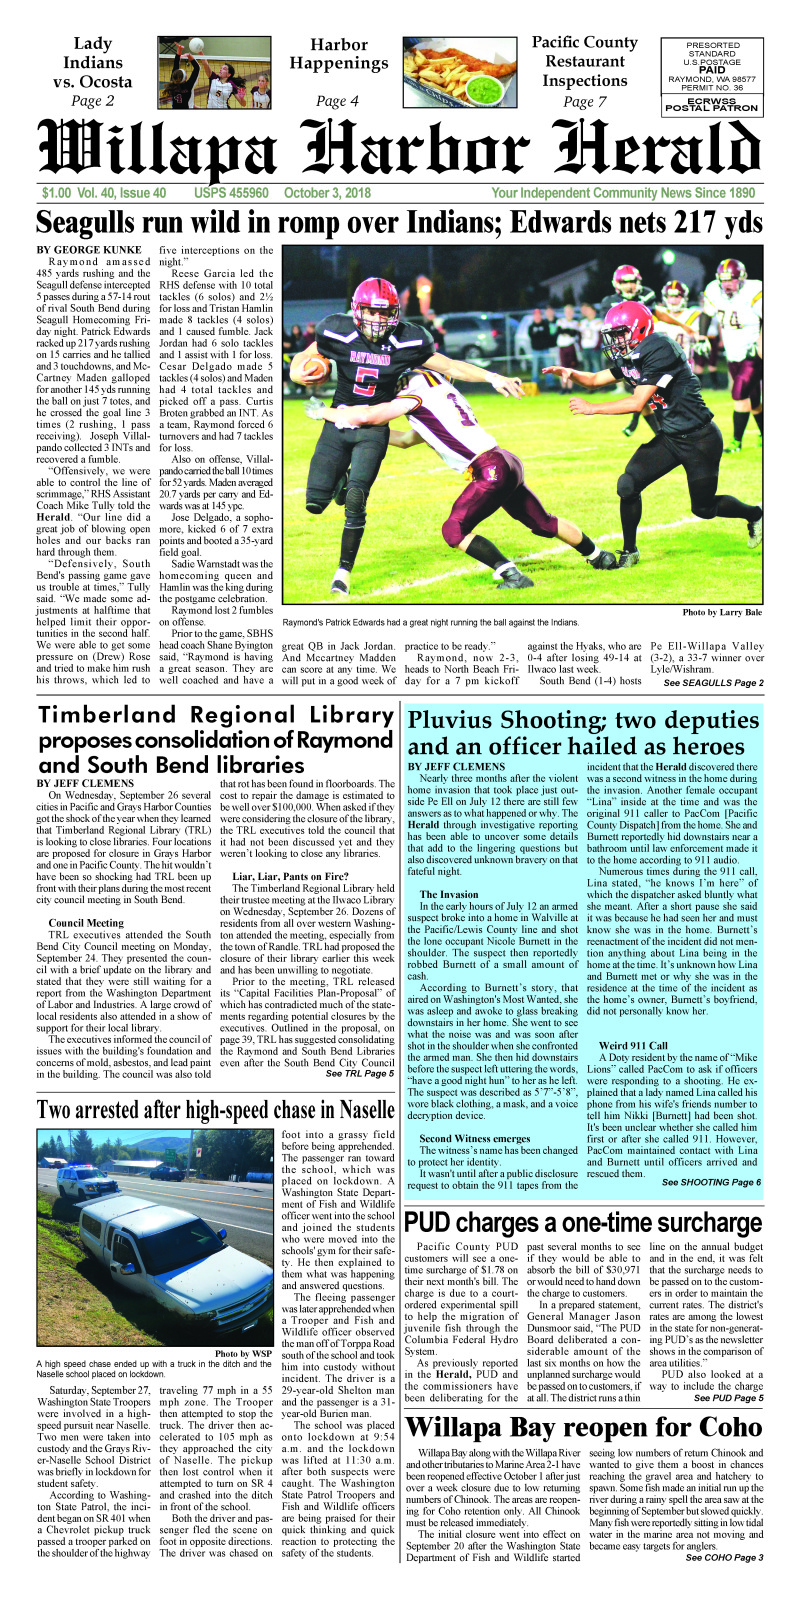 October 3, 2018 Willapa Harbor Herald